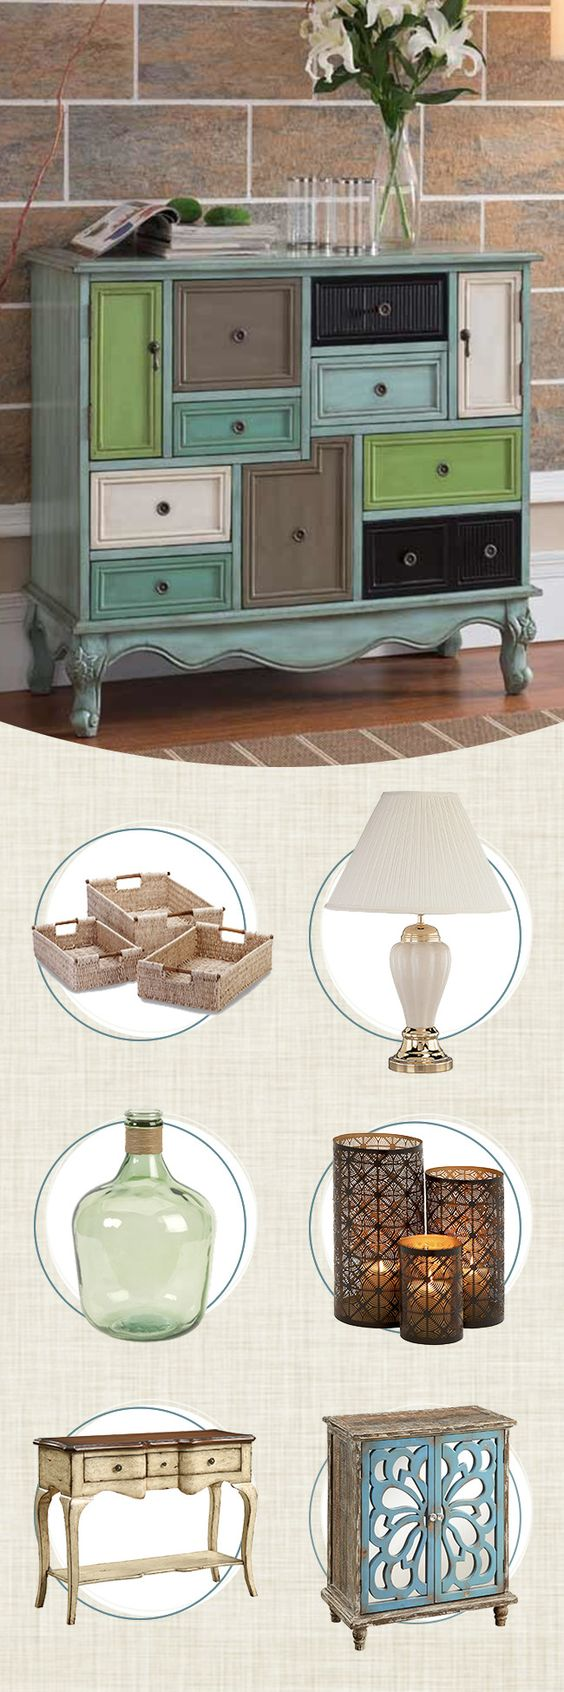 Whether you're looking to show off some family heirlooms with a new display cabinet or add some additional storage space, accent chests and cabinets seamlessly combine form and function to make your space truly your own. Visit Wayfair and sign up today to get access to exclusive deals everyday up to 70% off. Free shipping on all orders over $49.